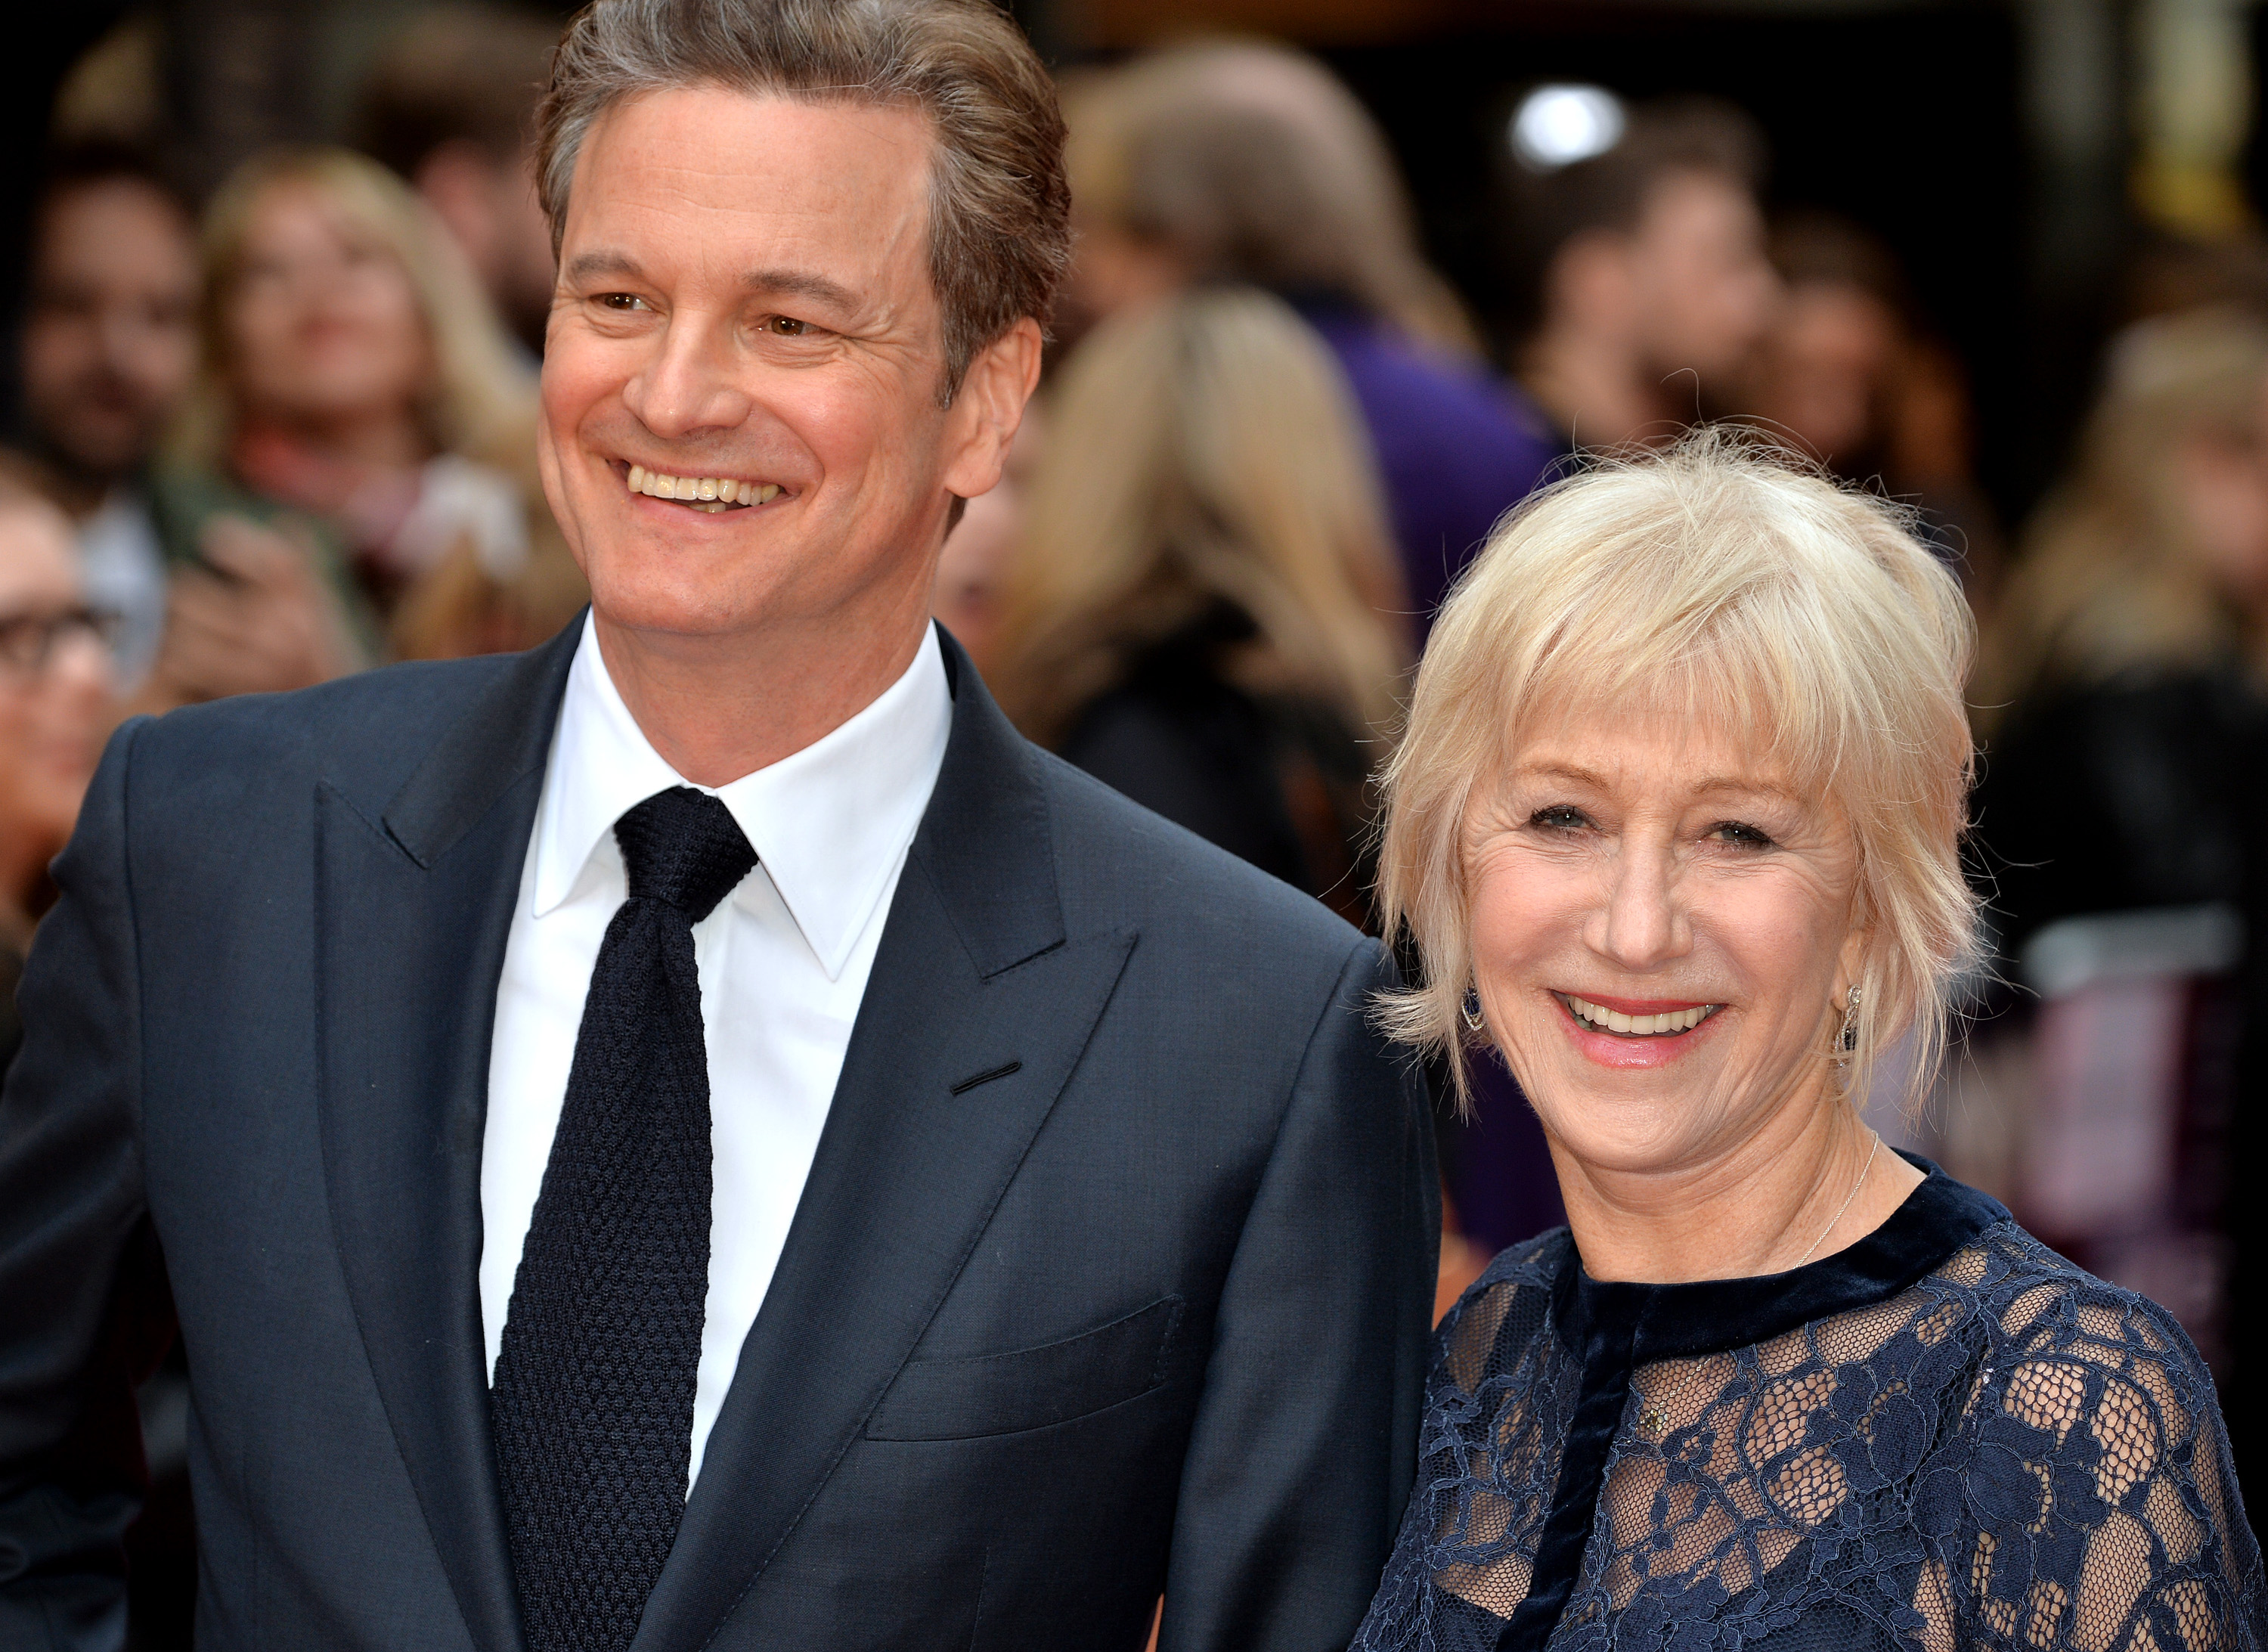 Dame Helen Mirren to play head of Mi6 in Colin Firth's TV spy drama